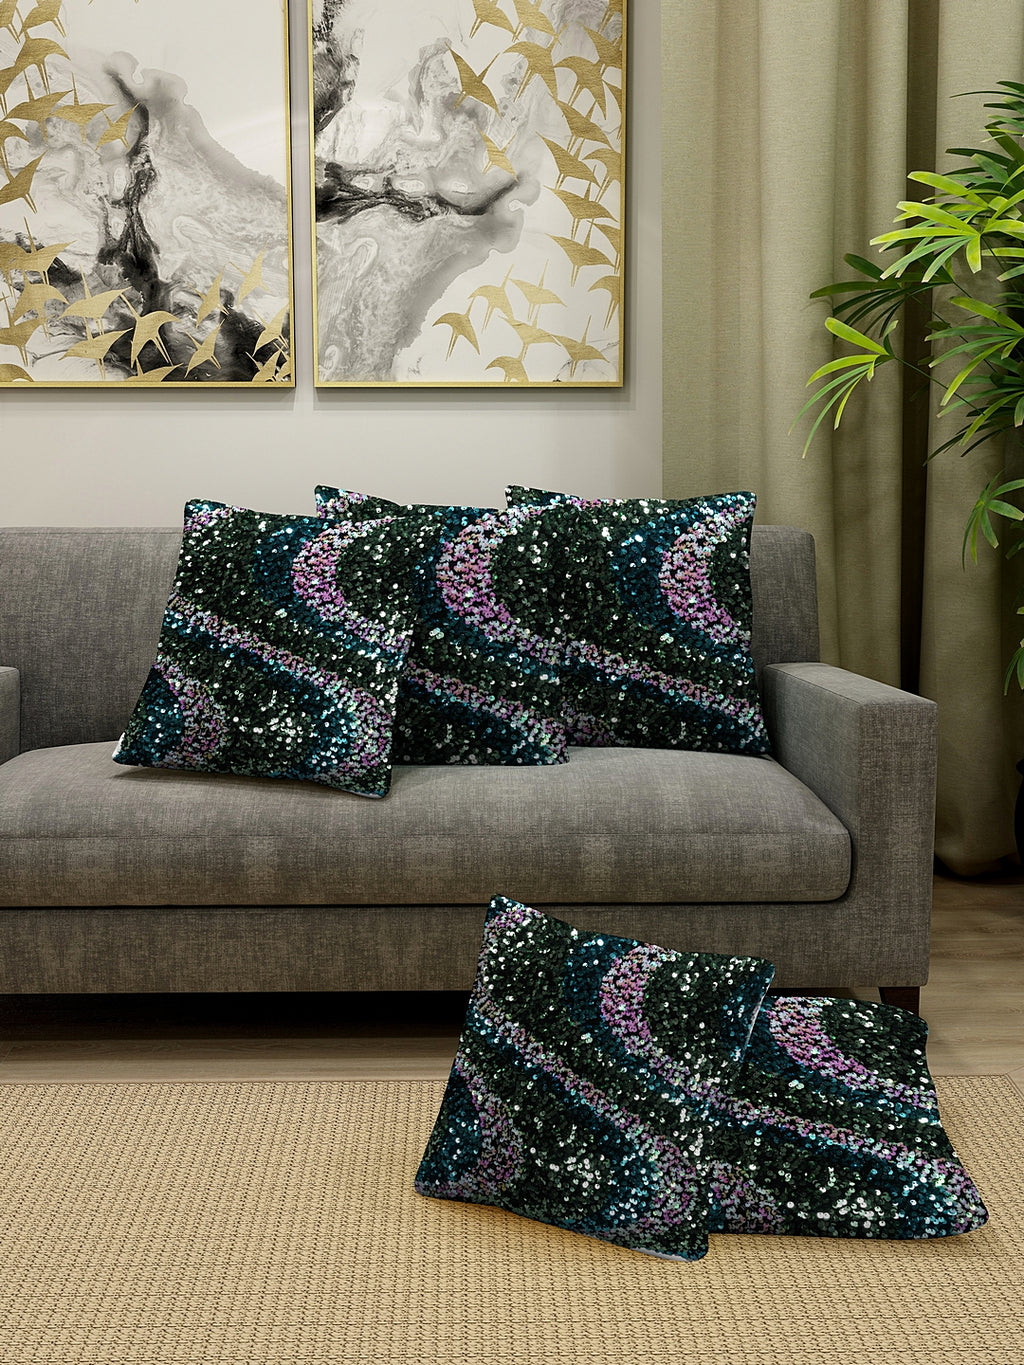 Detec™ Hosta Multi Color Sequence Detailing Cushion Cover (16 x 16 inches) Set of 5 pcs.